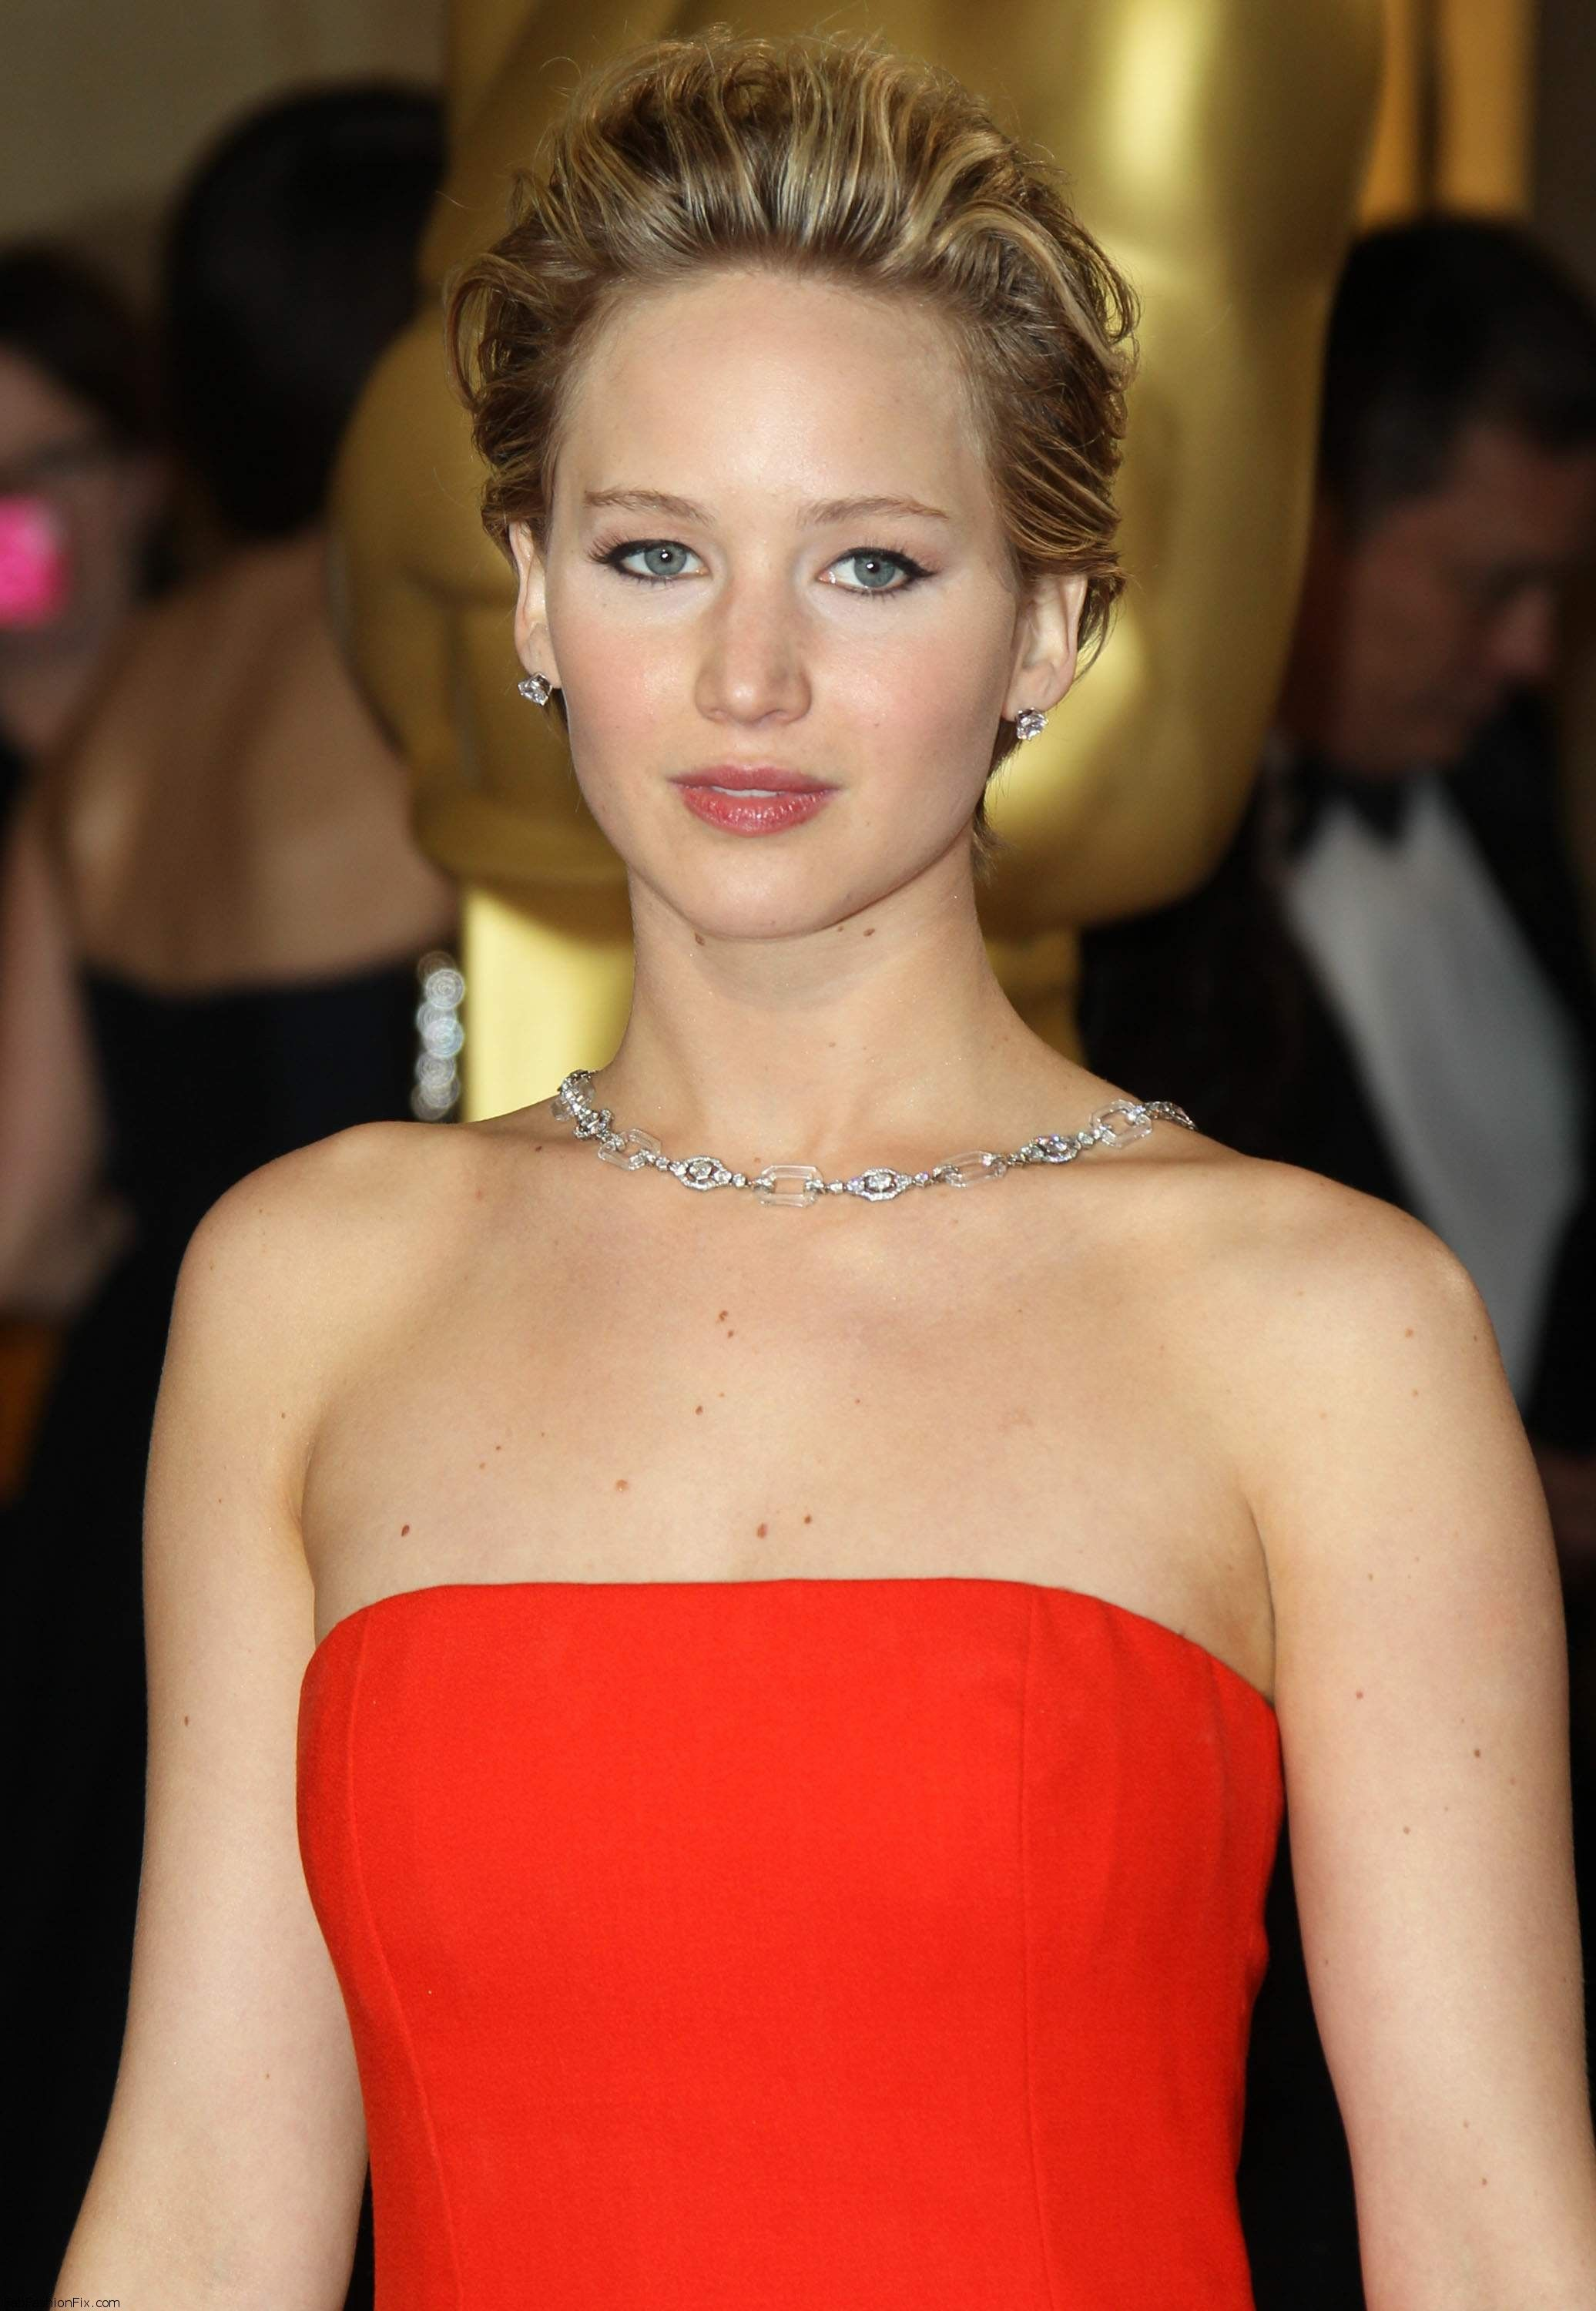 Jennifer Lawrence_02.03.14_DFSDAW_002